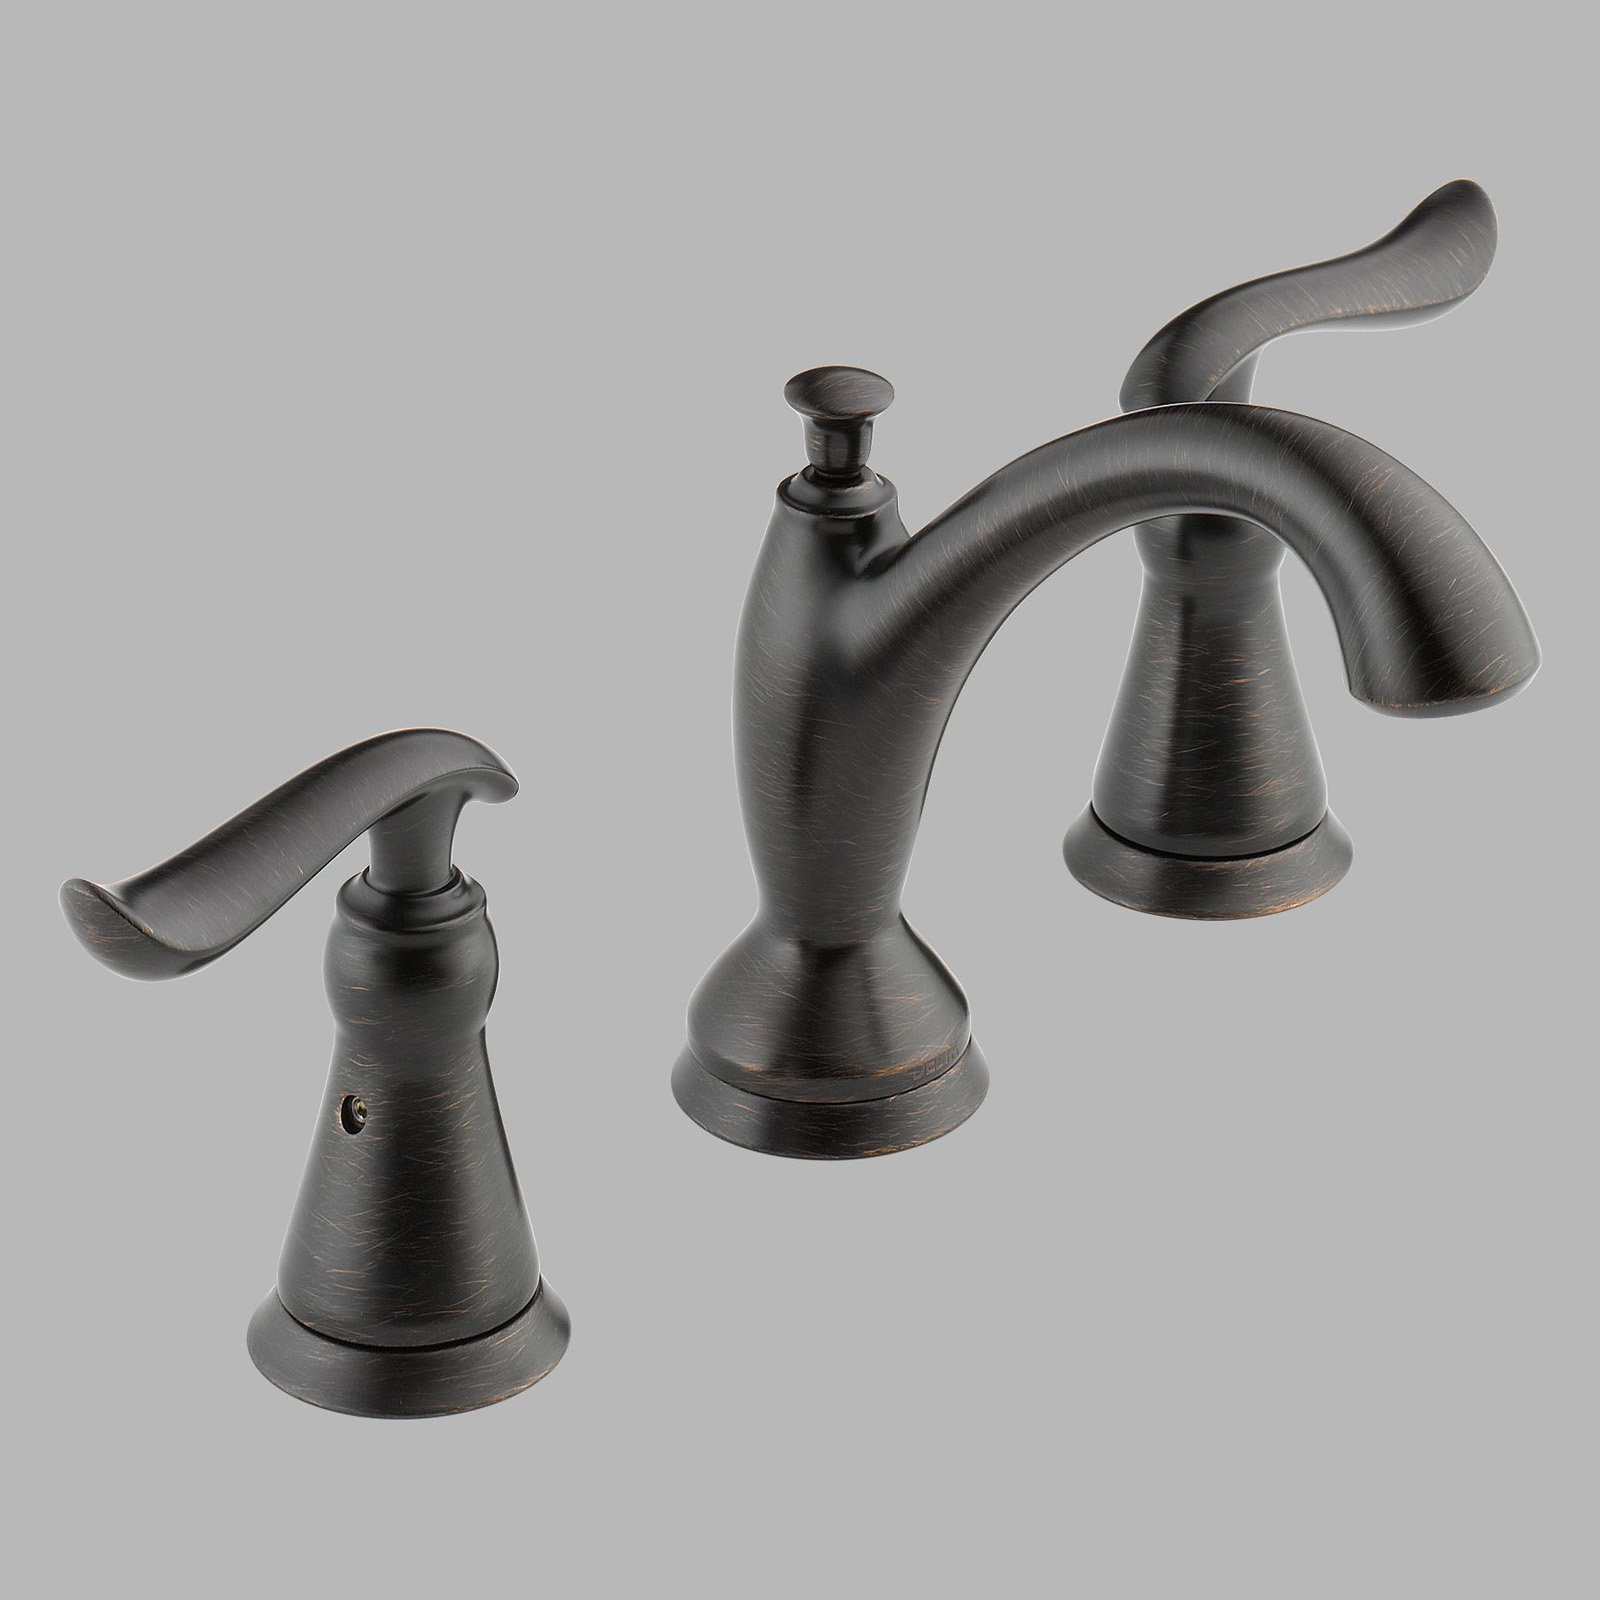 Delta Linden 3594lf Double Handle Widespread Bathroom Sink Faucet